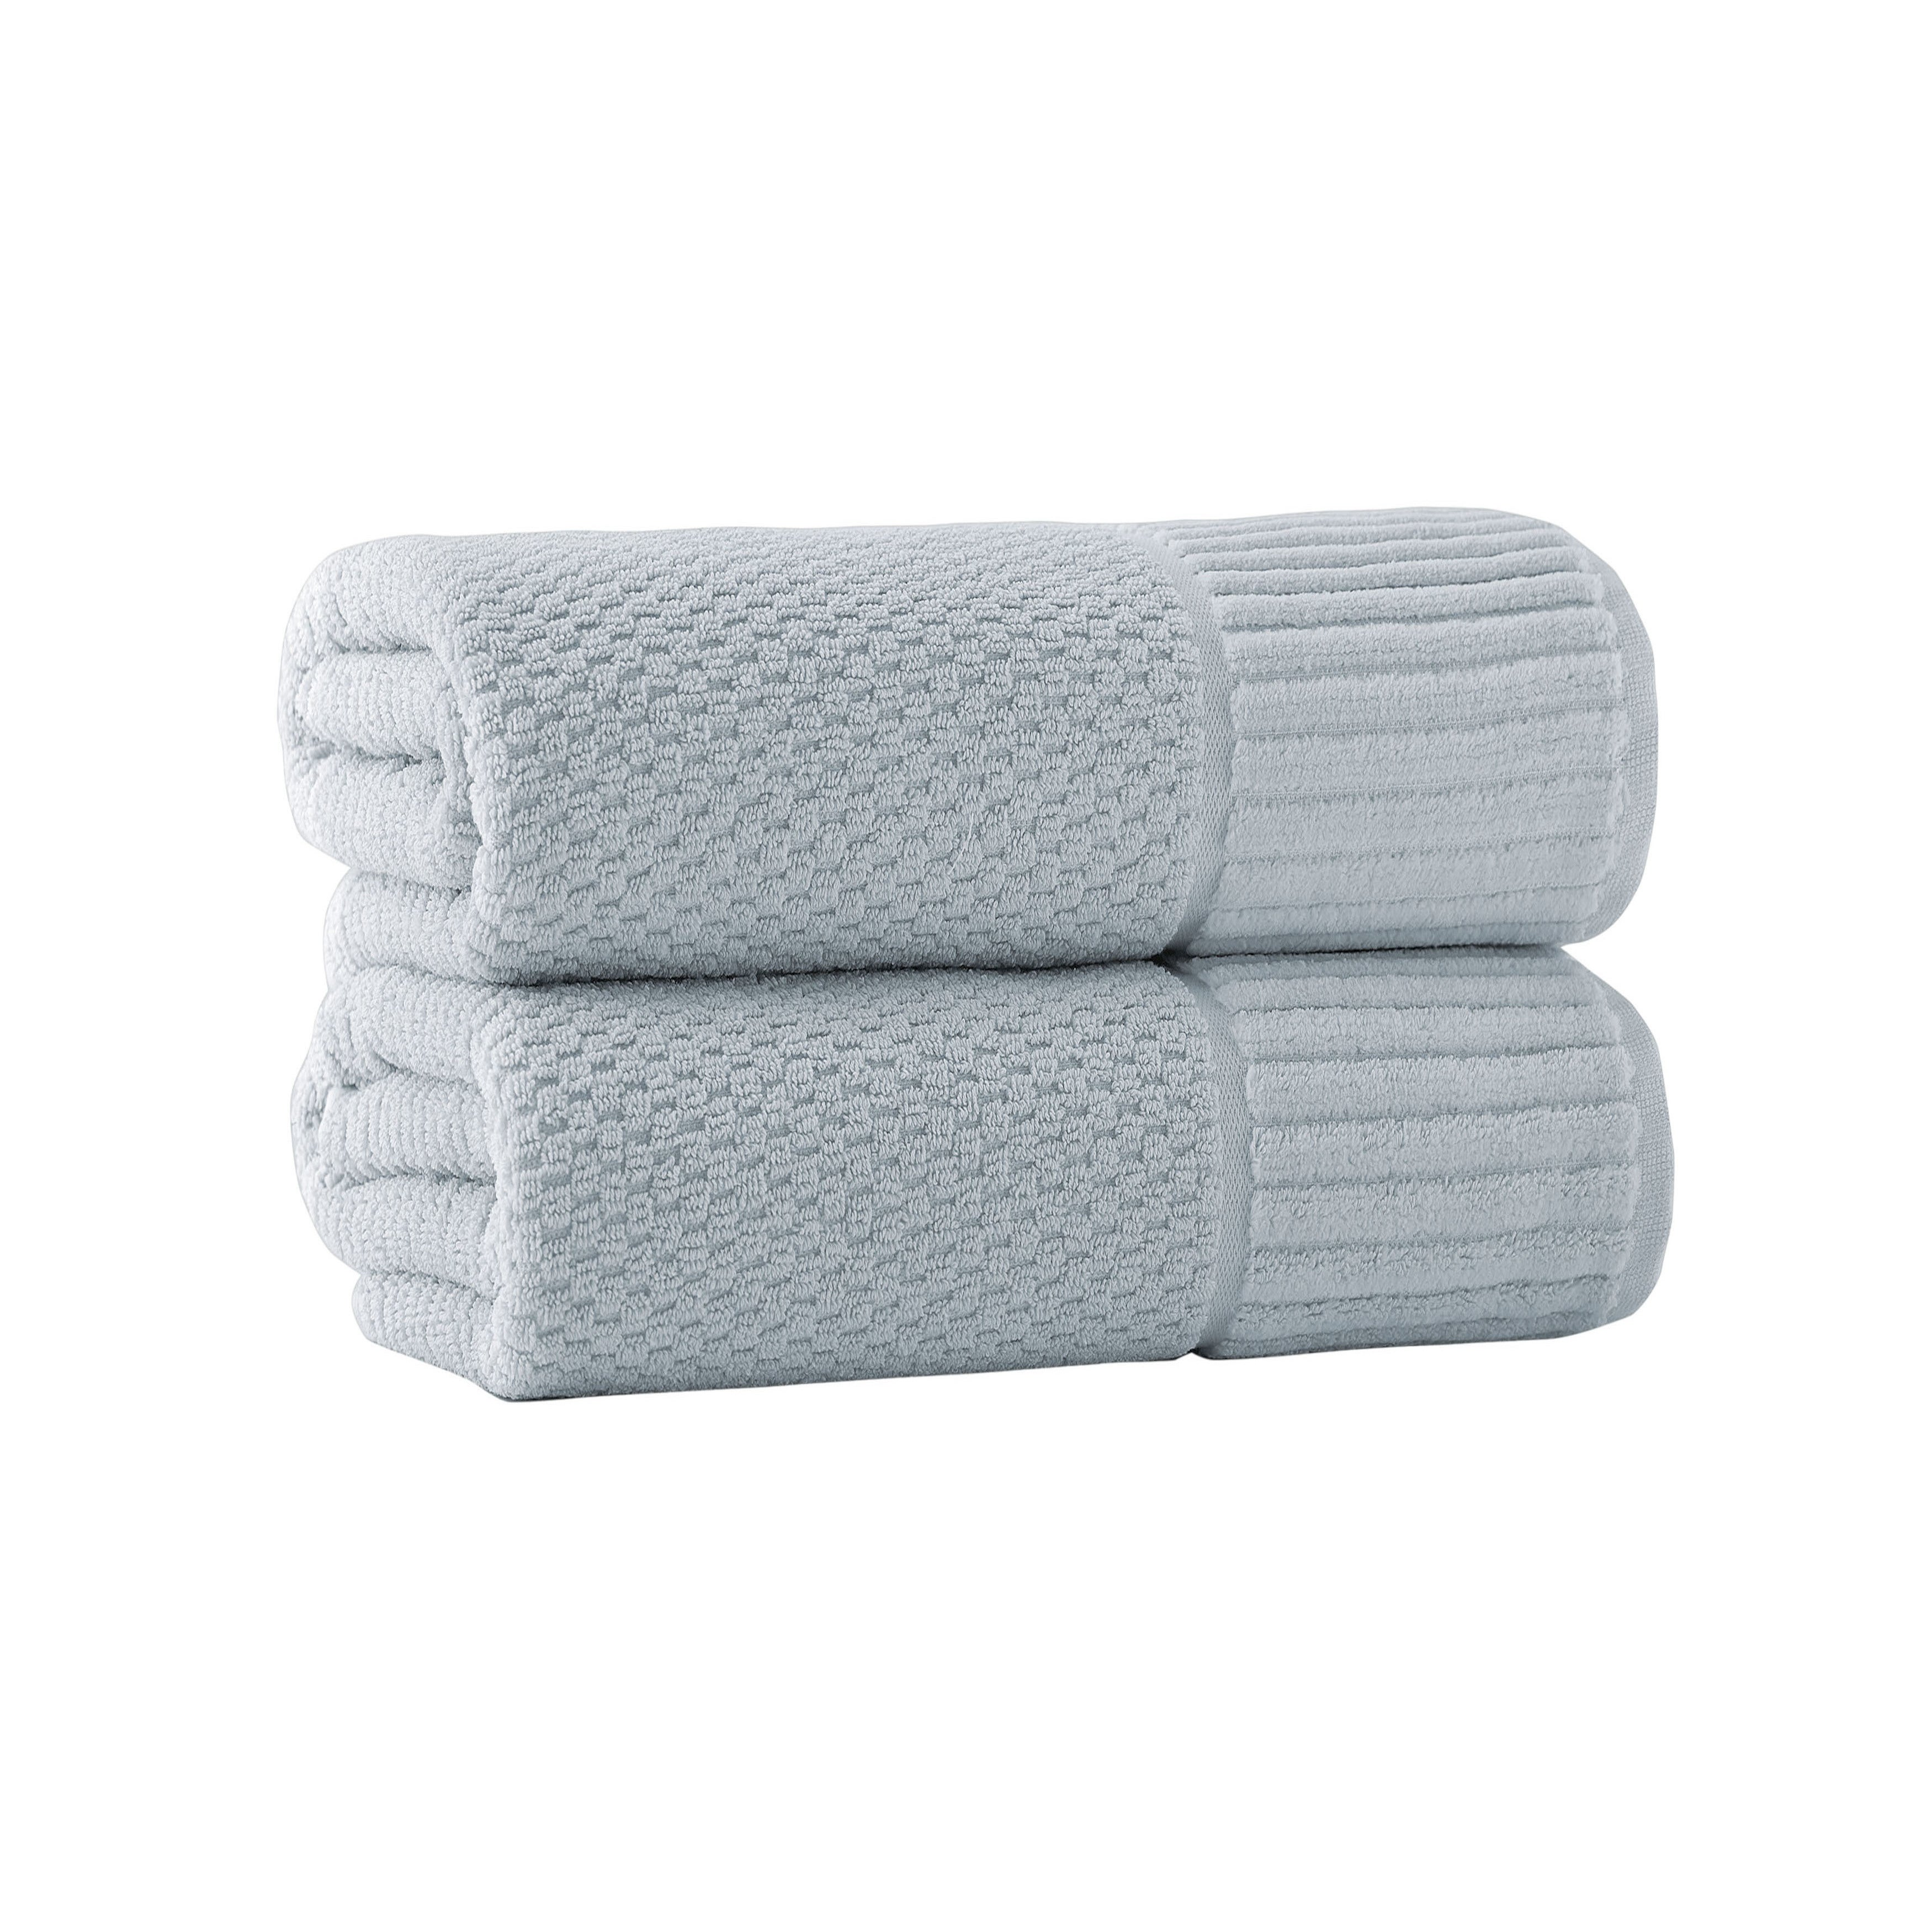 thumbnail 15 - The-Gray-Barn-Scharbauer-Bath-Towels-Set-of-2